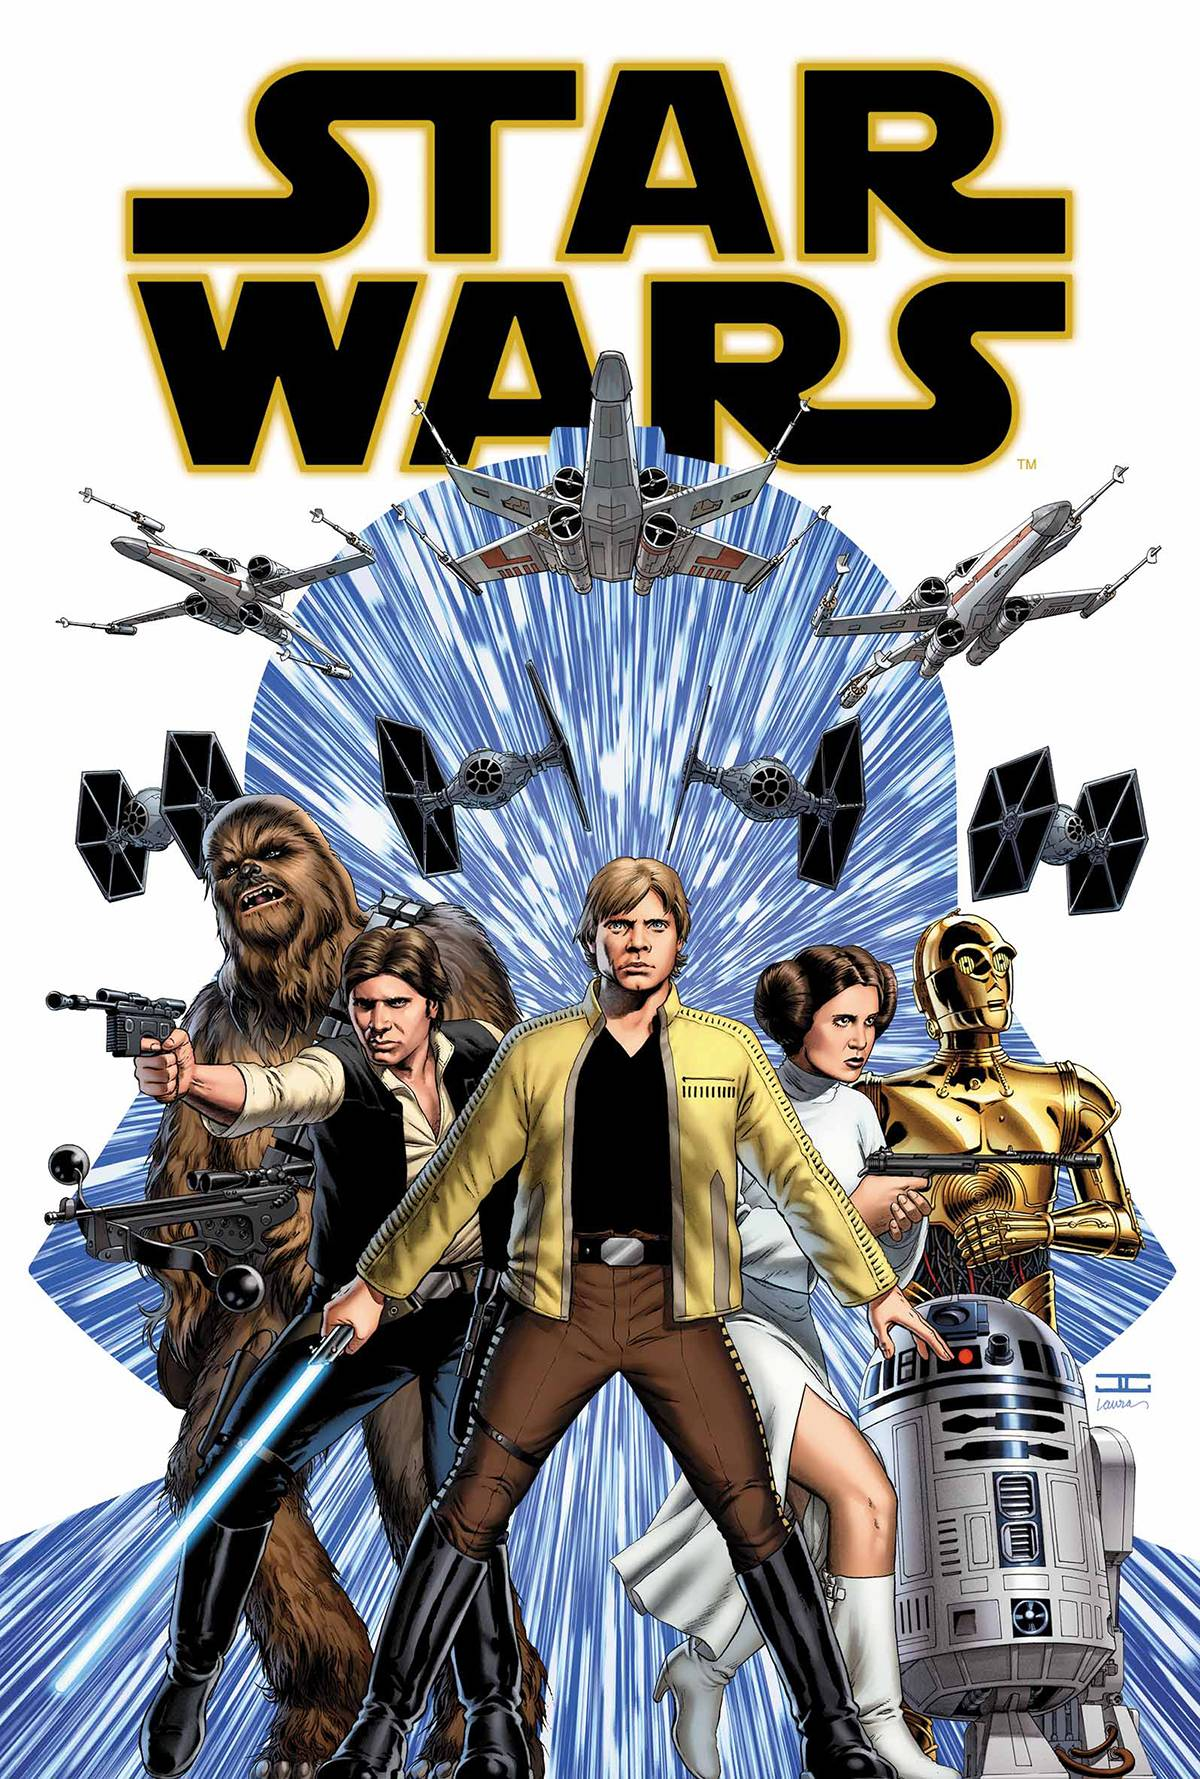 STAR WARS 1 COMIC